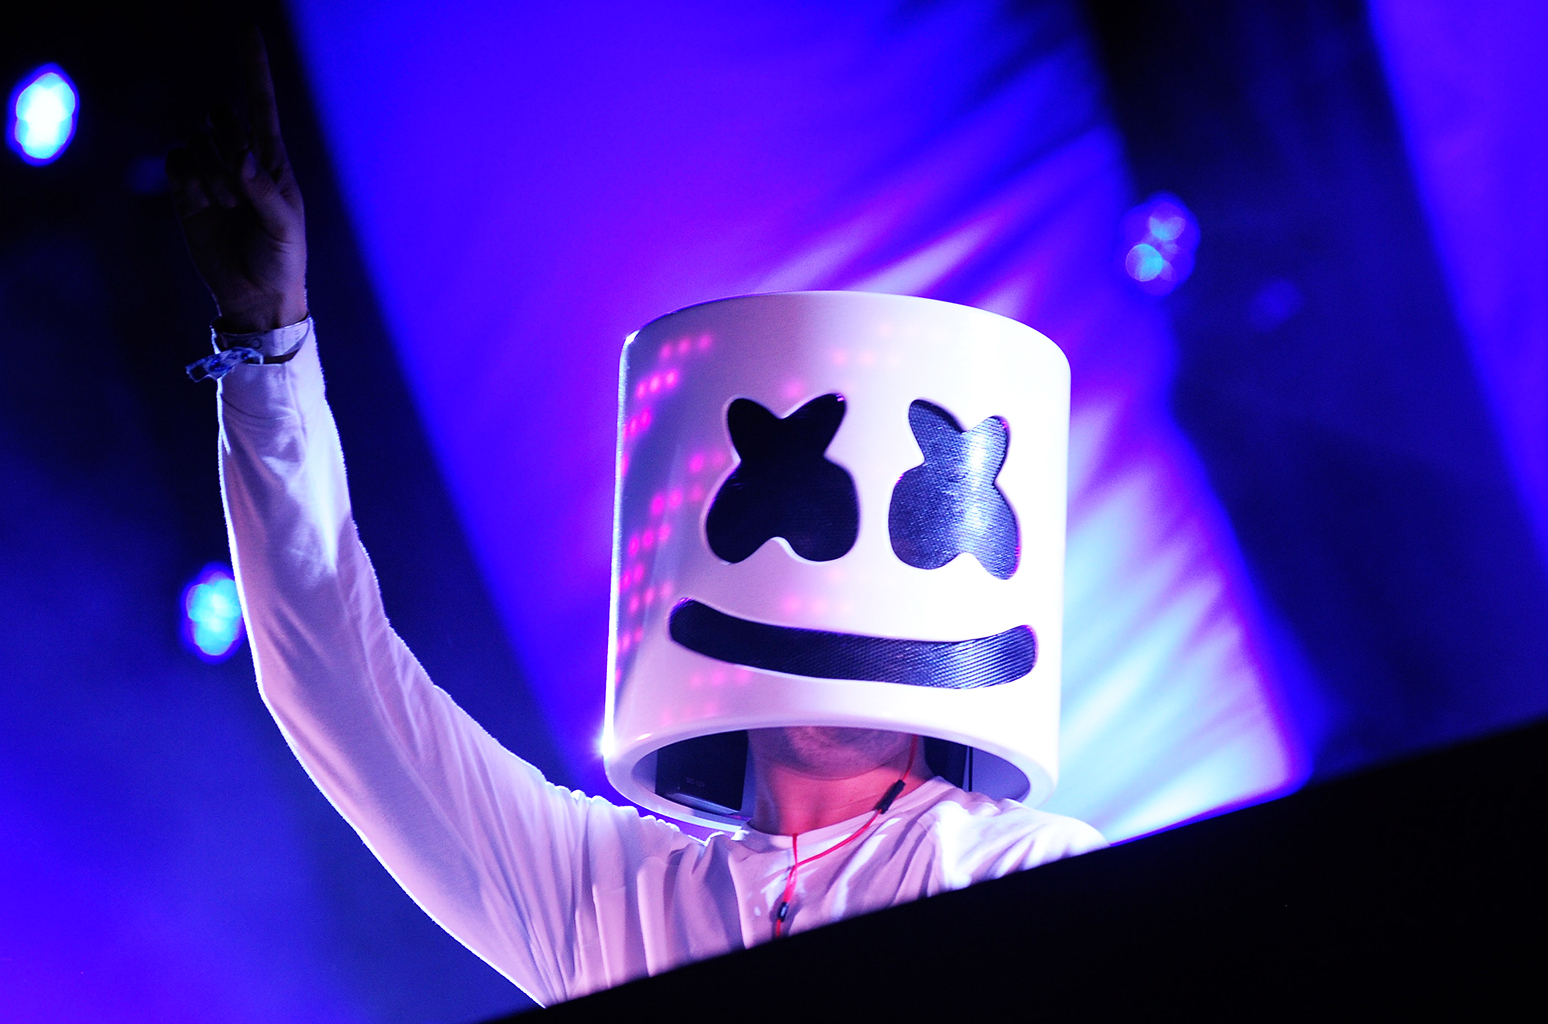 Iphone X Full Wallpaper Size Marshmello Wallpaper Full Hd Pictures